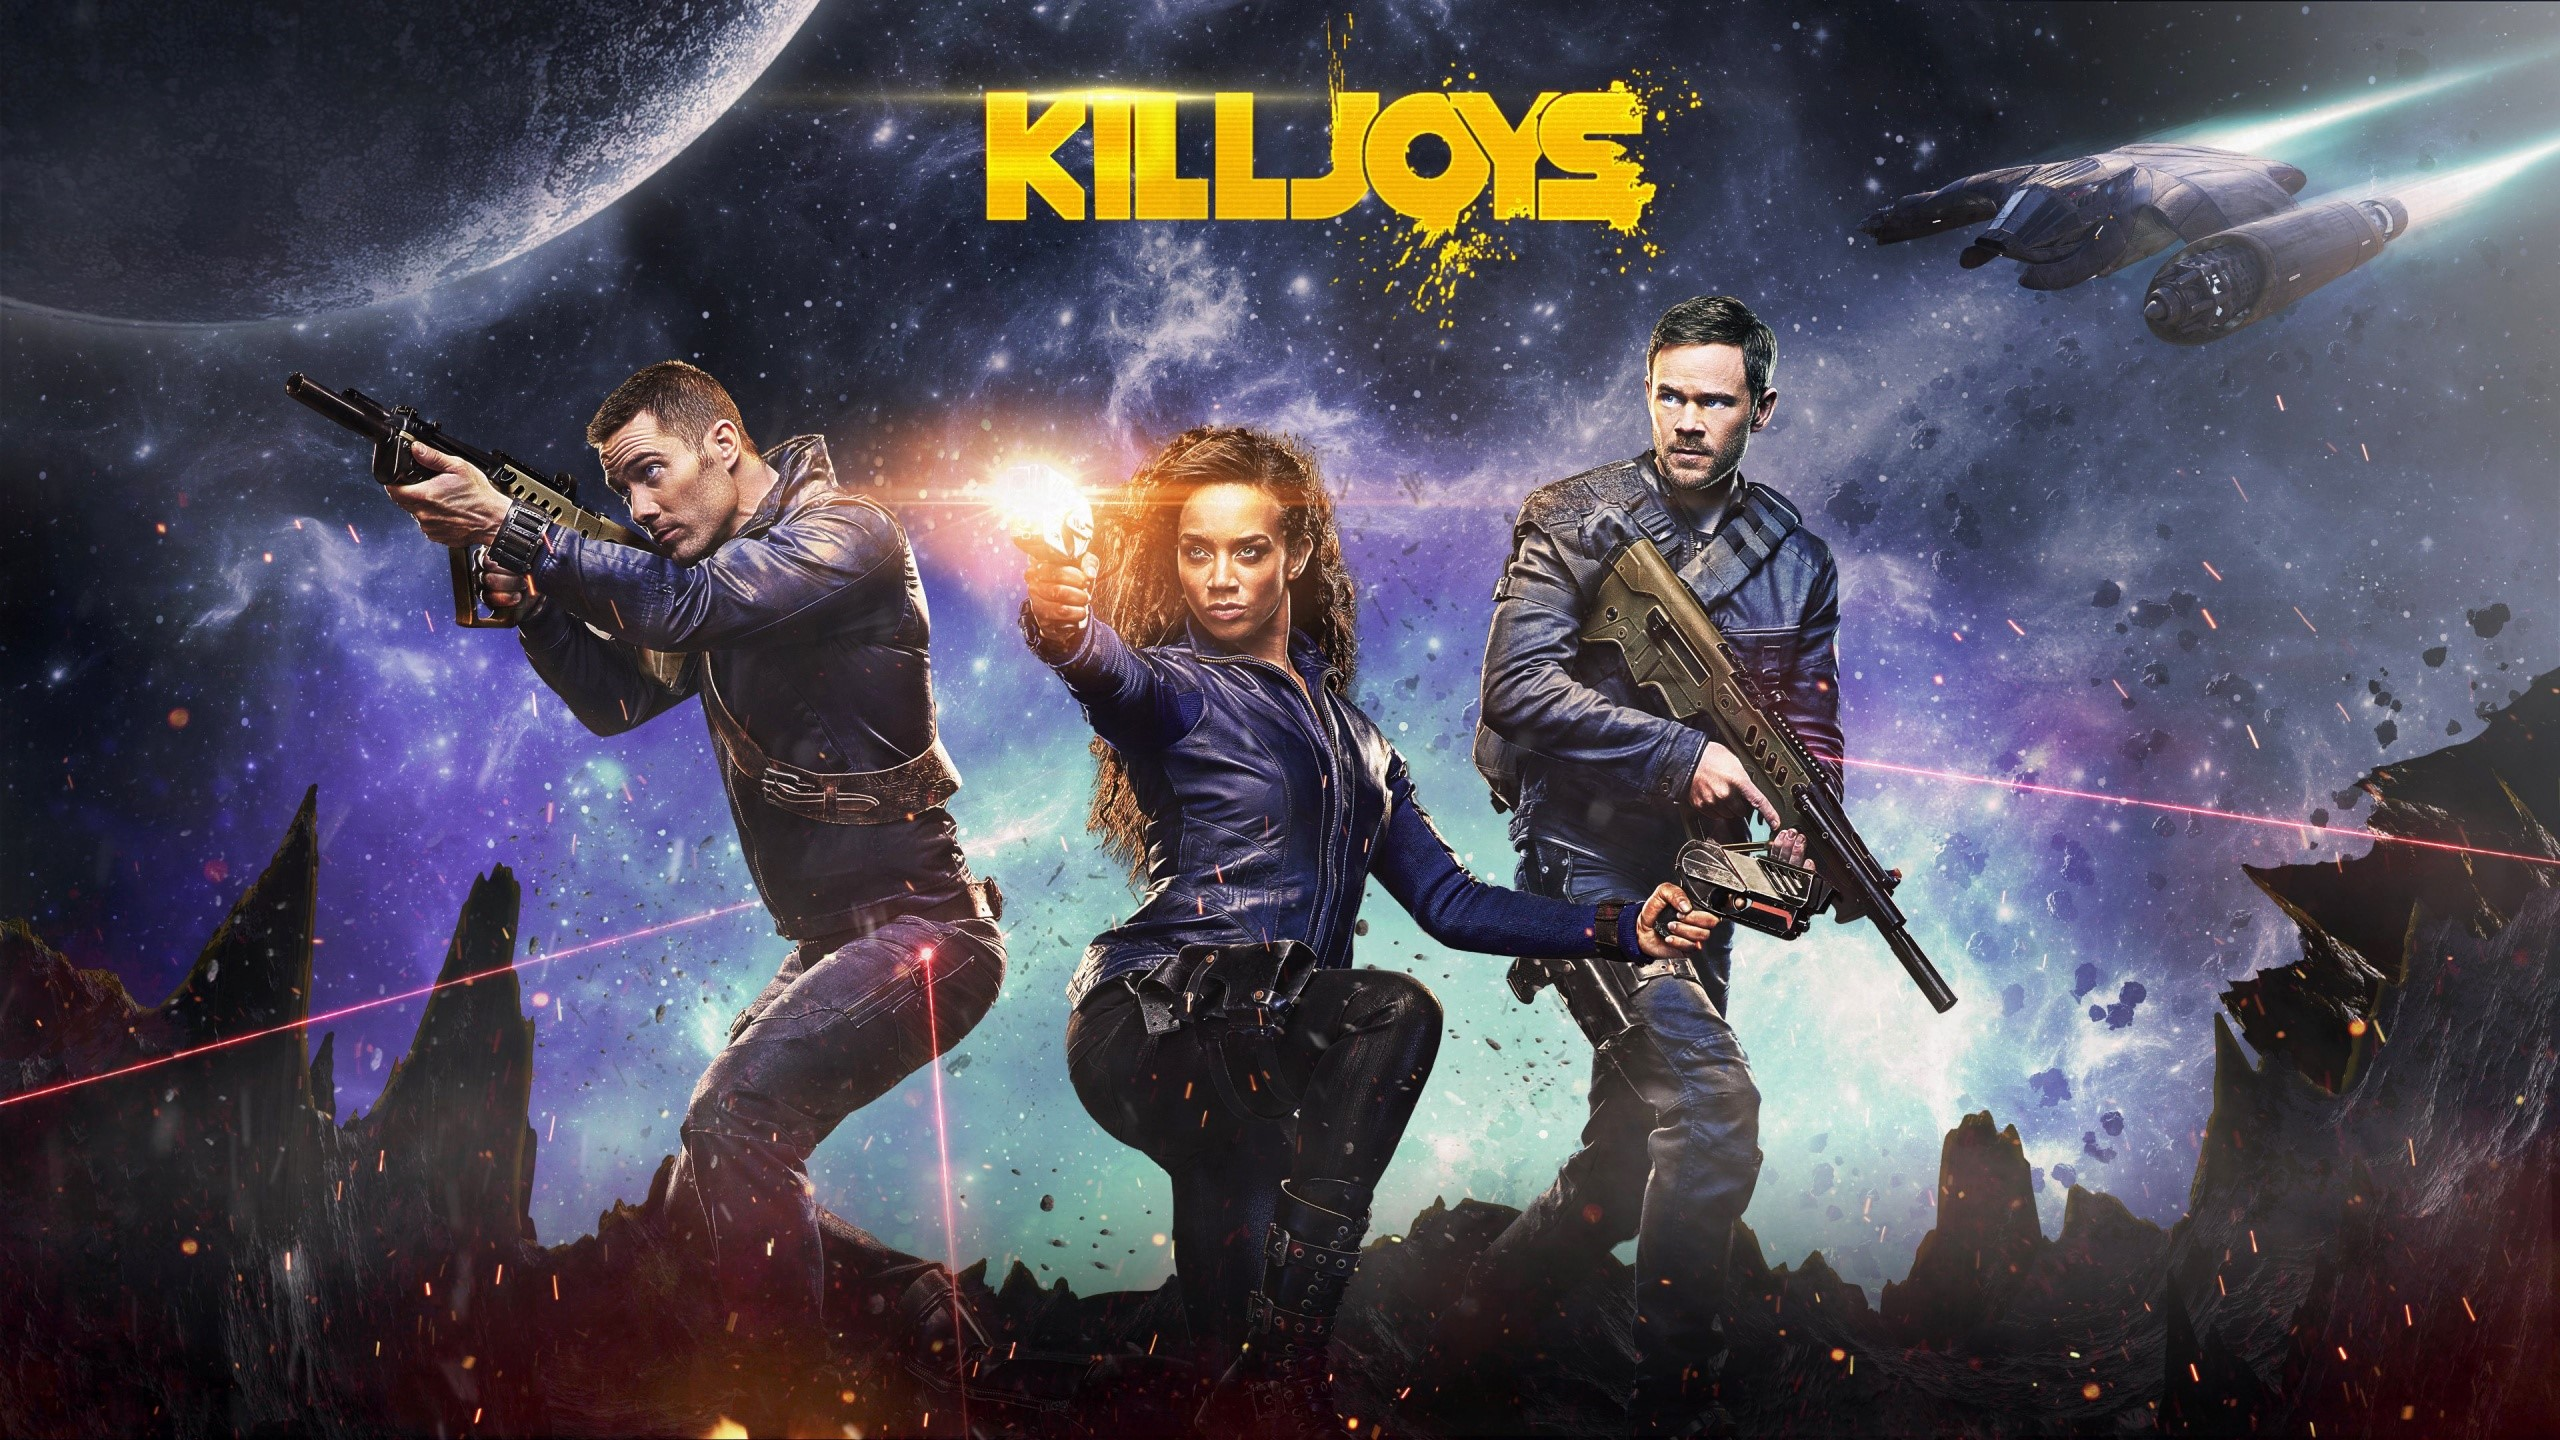 Wallpaper Killjoys series